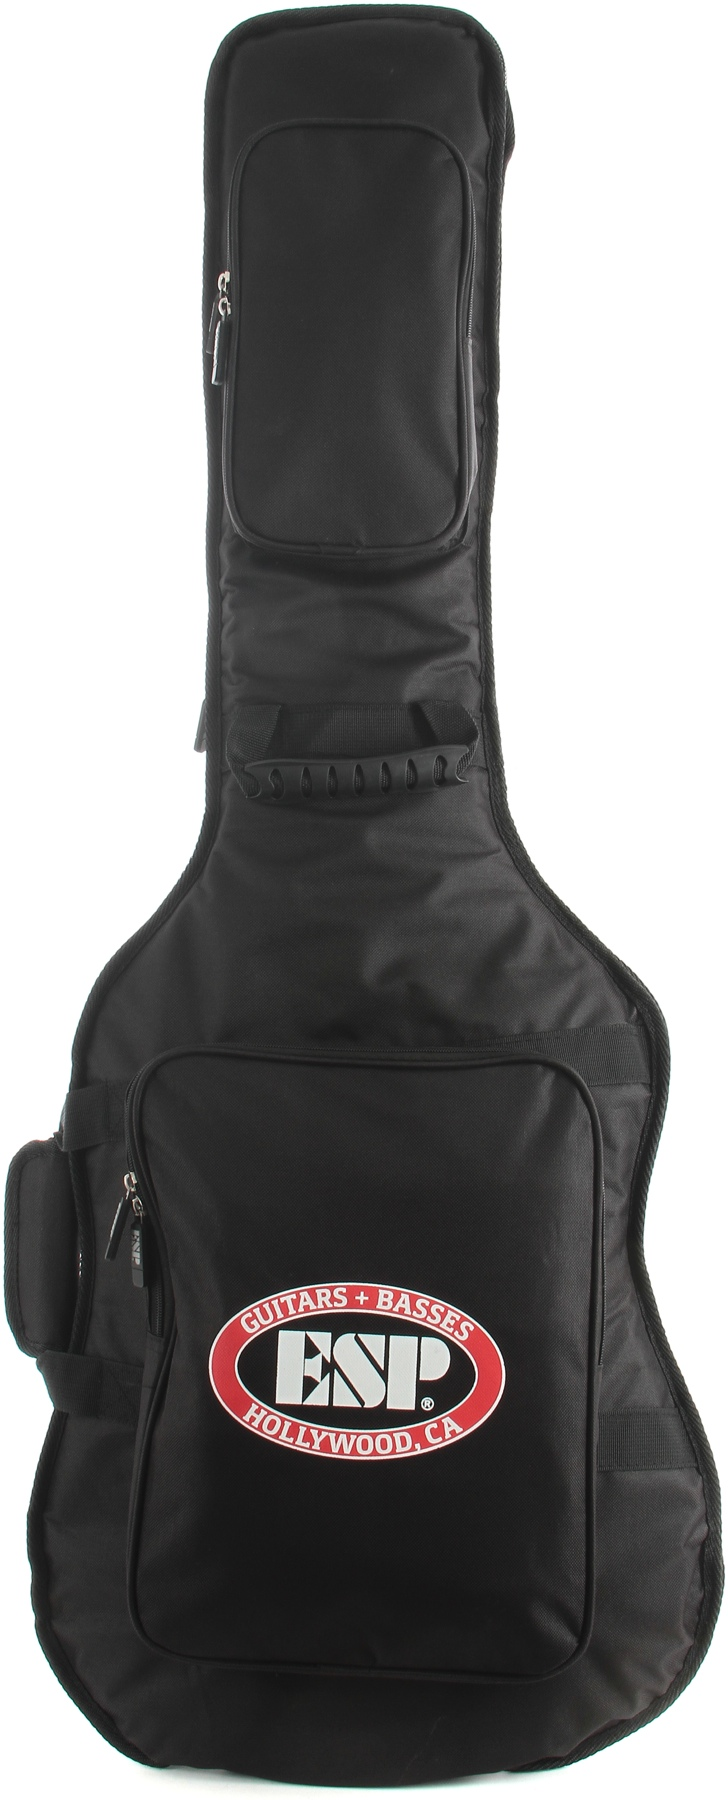 ESP CGIGDXG Heavy Duty Deluxe Gig Bag for LTD & ESP Guitar with 2 External Pockets for Music Sheets/Strings